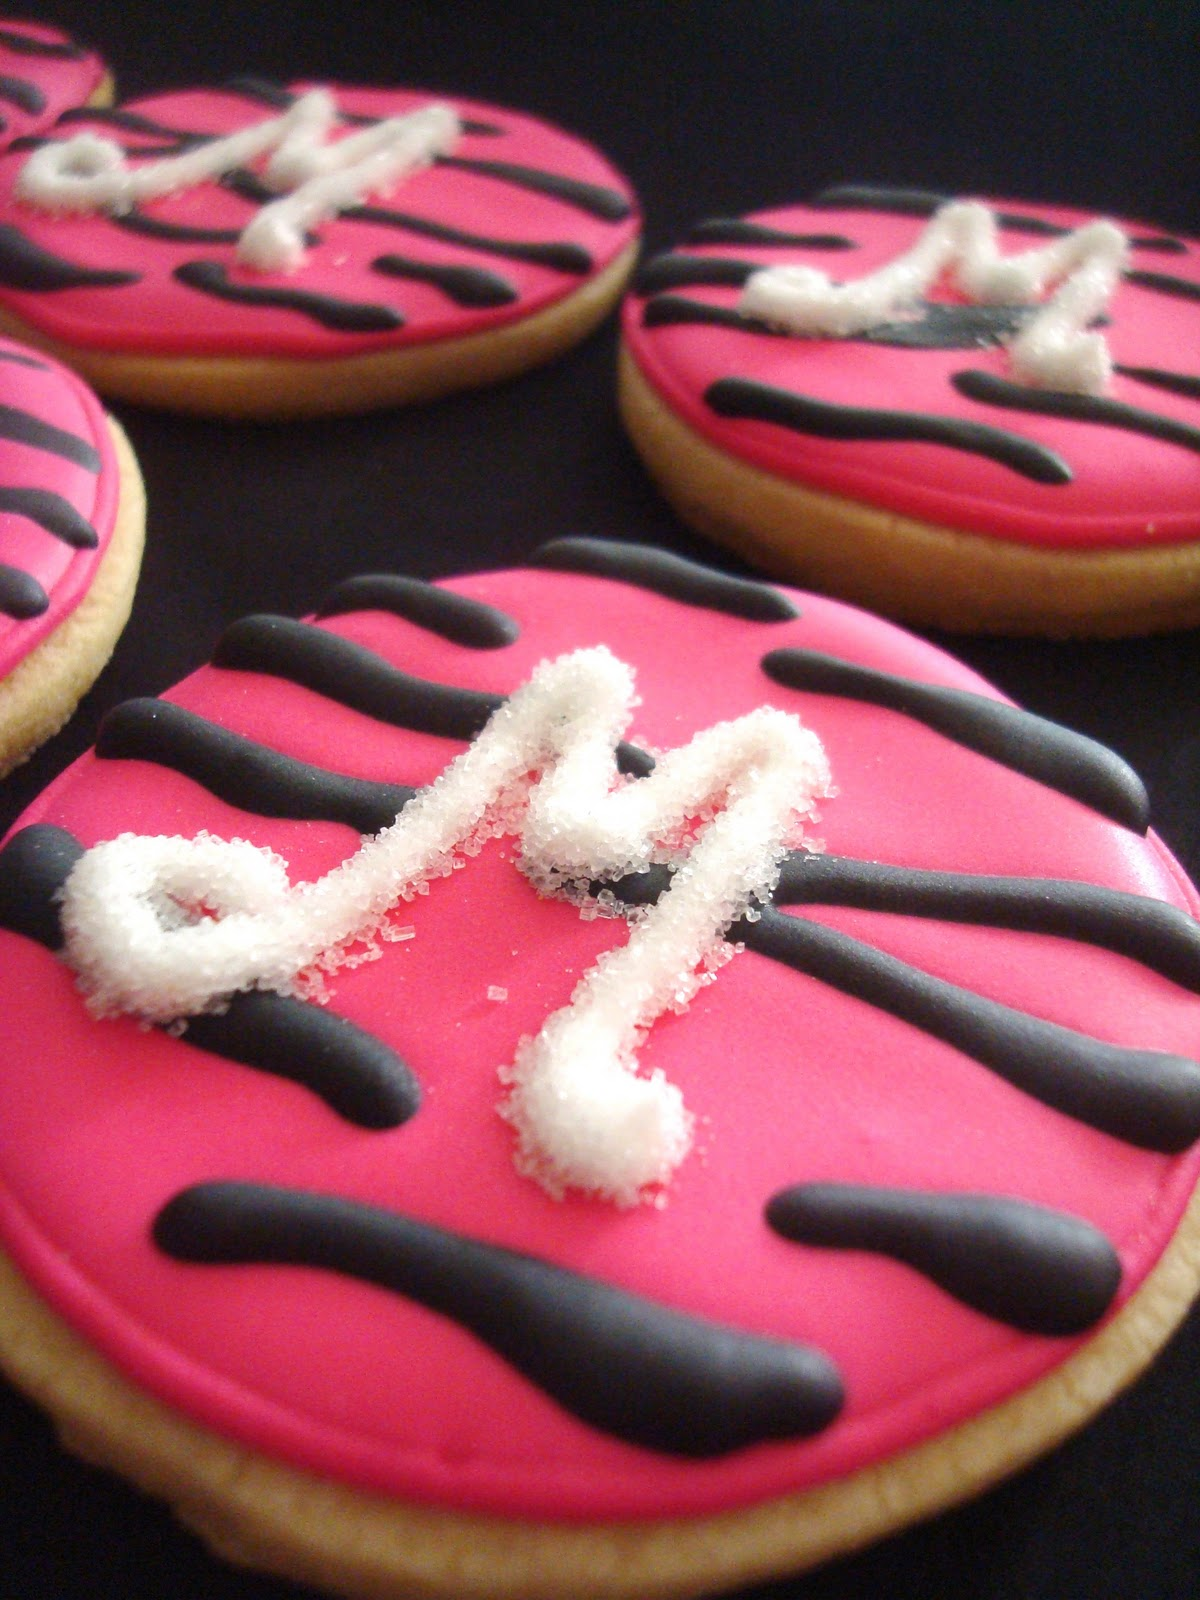 To Match The Decor And Cake For A Little Girls Birthday Party Theme Was Zebra Diva These Cookies Were Perfect As Favors